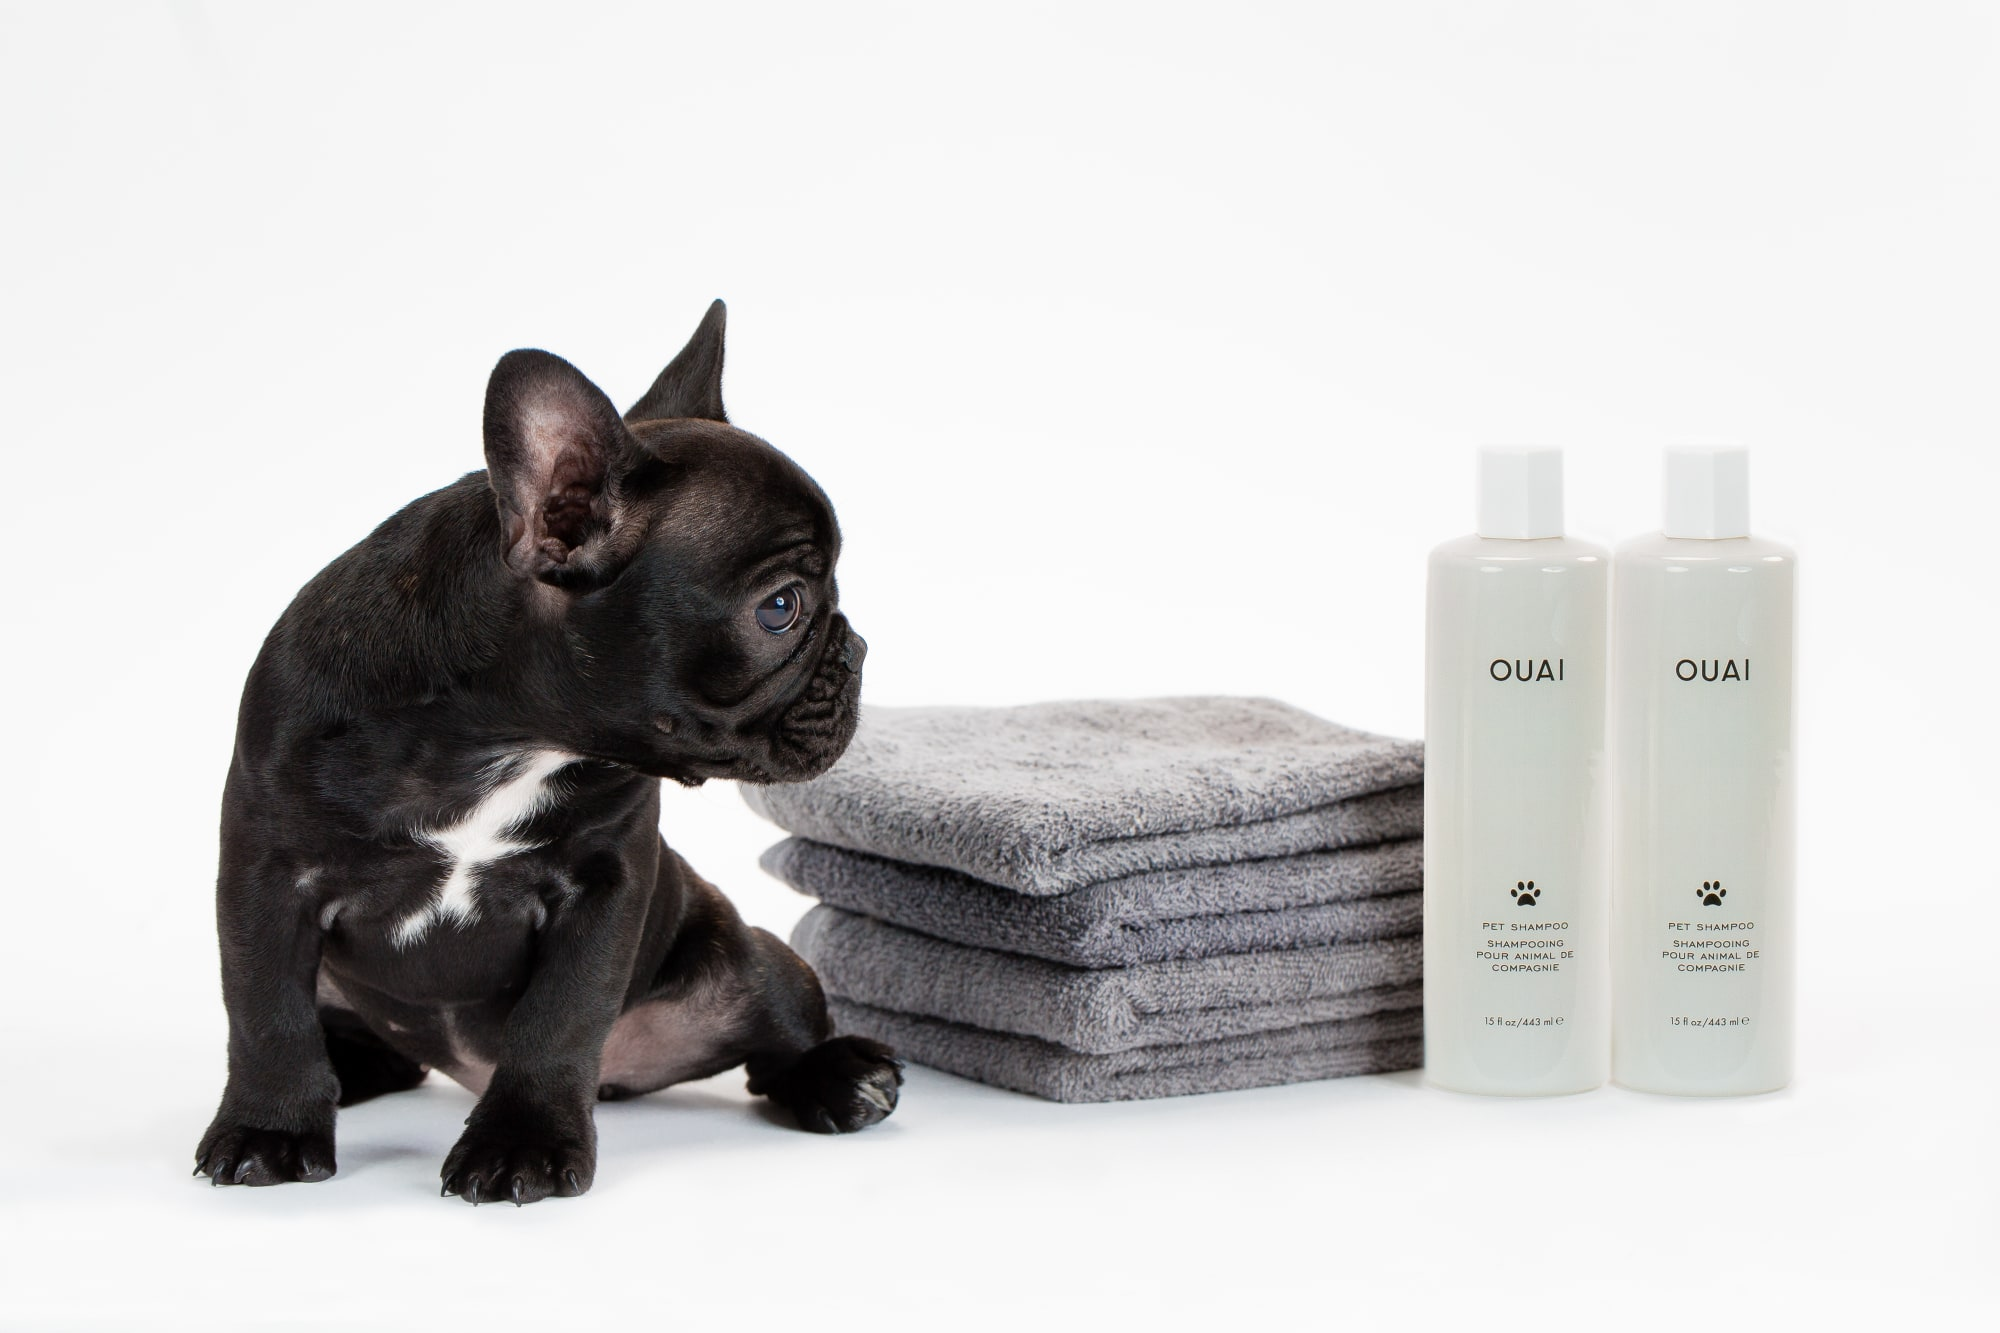 ouai pet shampoo french bull dog puppy.jpg